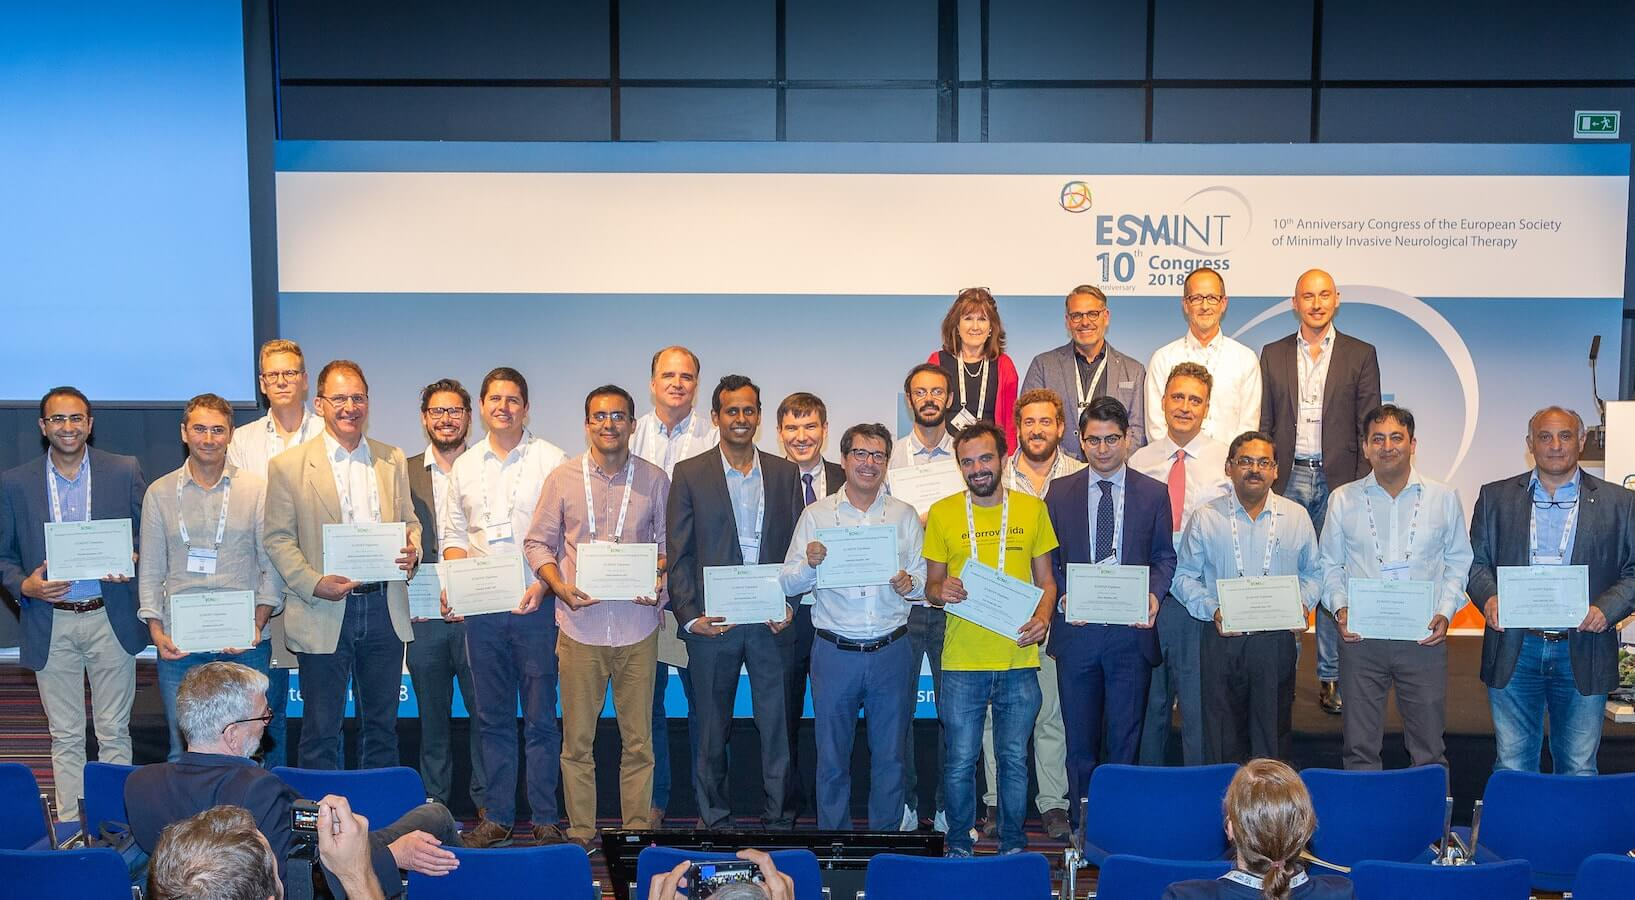 ESMINT Diploma 2018 Award Ceremony